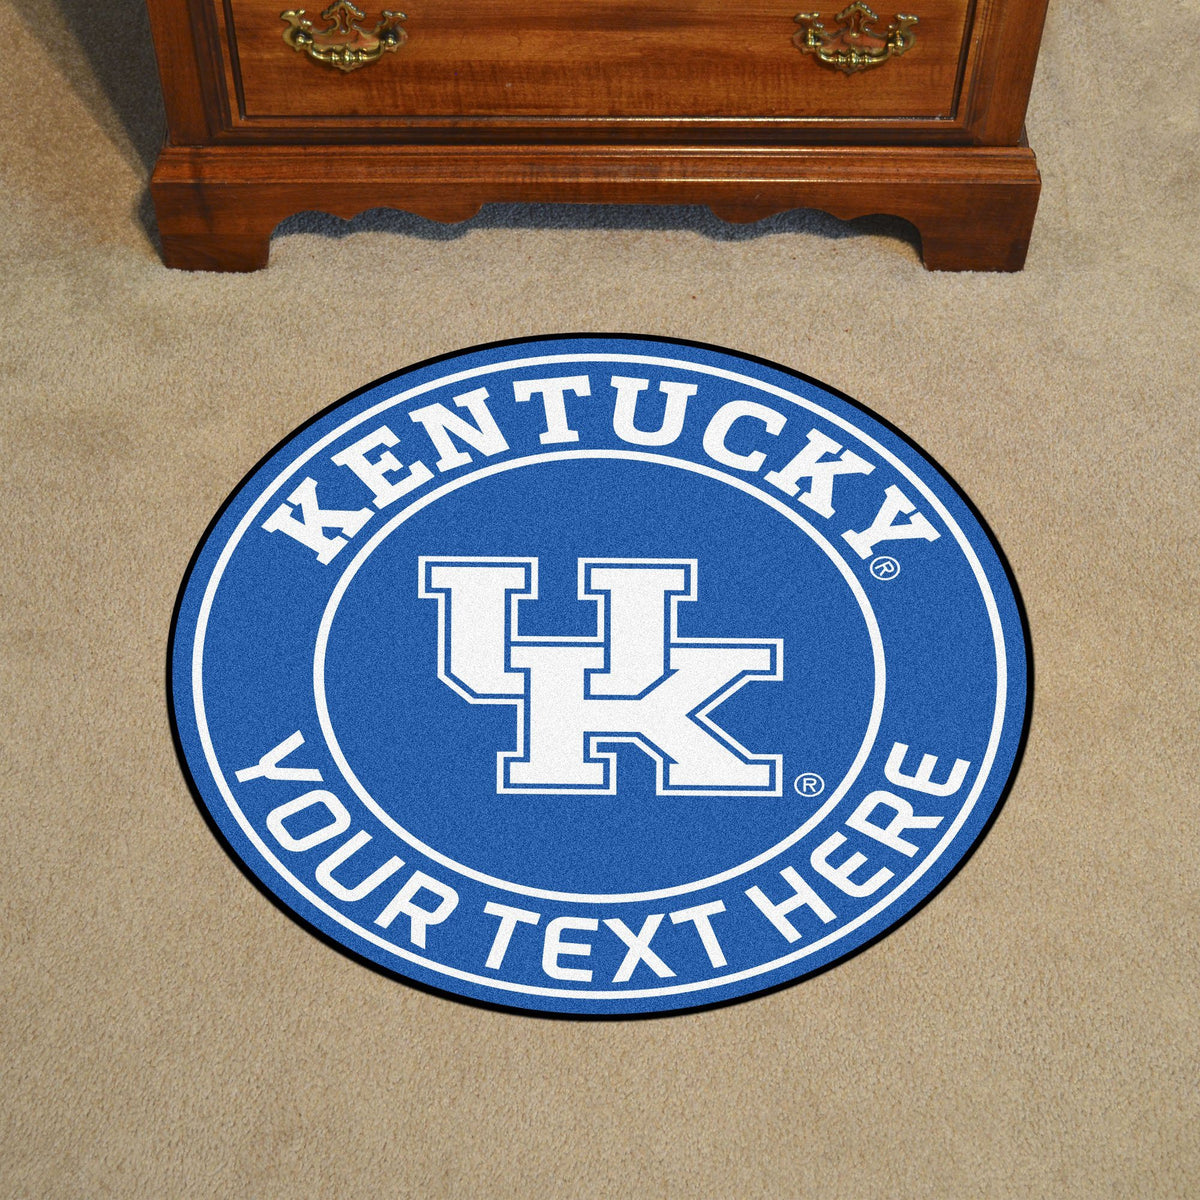 Collegiate Personalized Roundel Mat Personalized Roundel Mat Fan Mats University of Kentucky